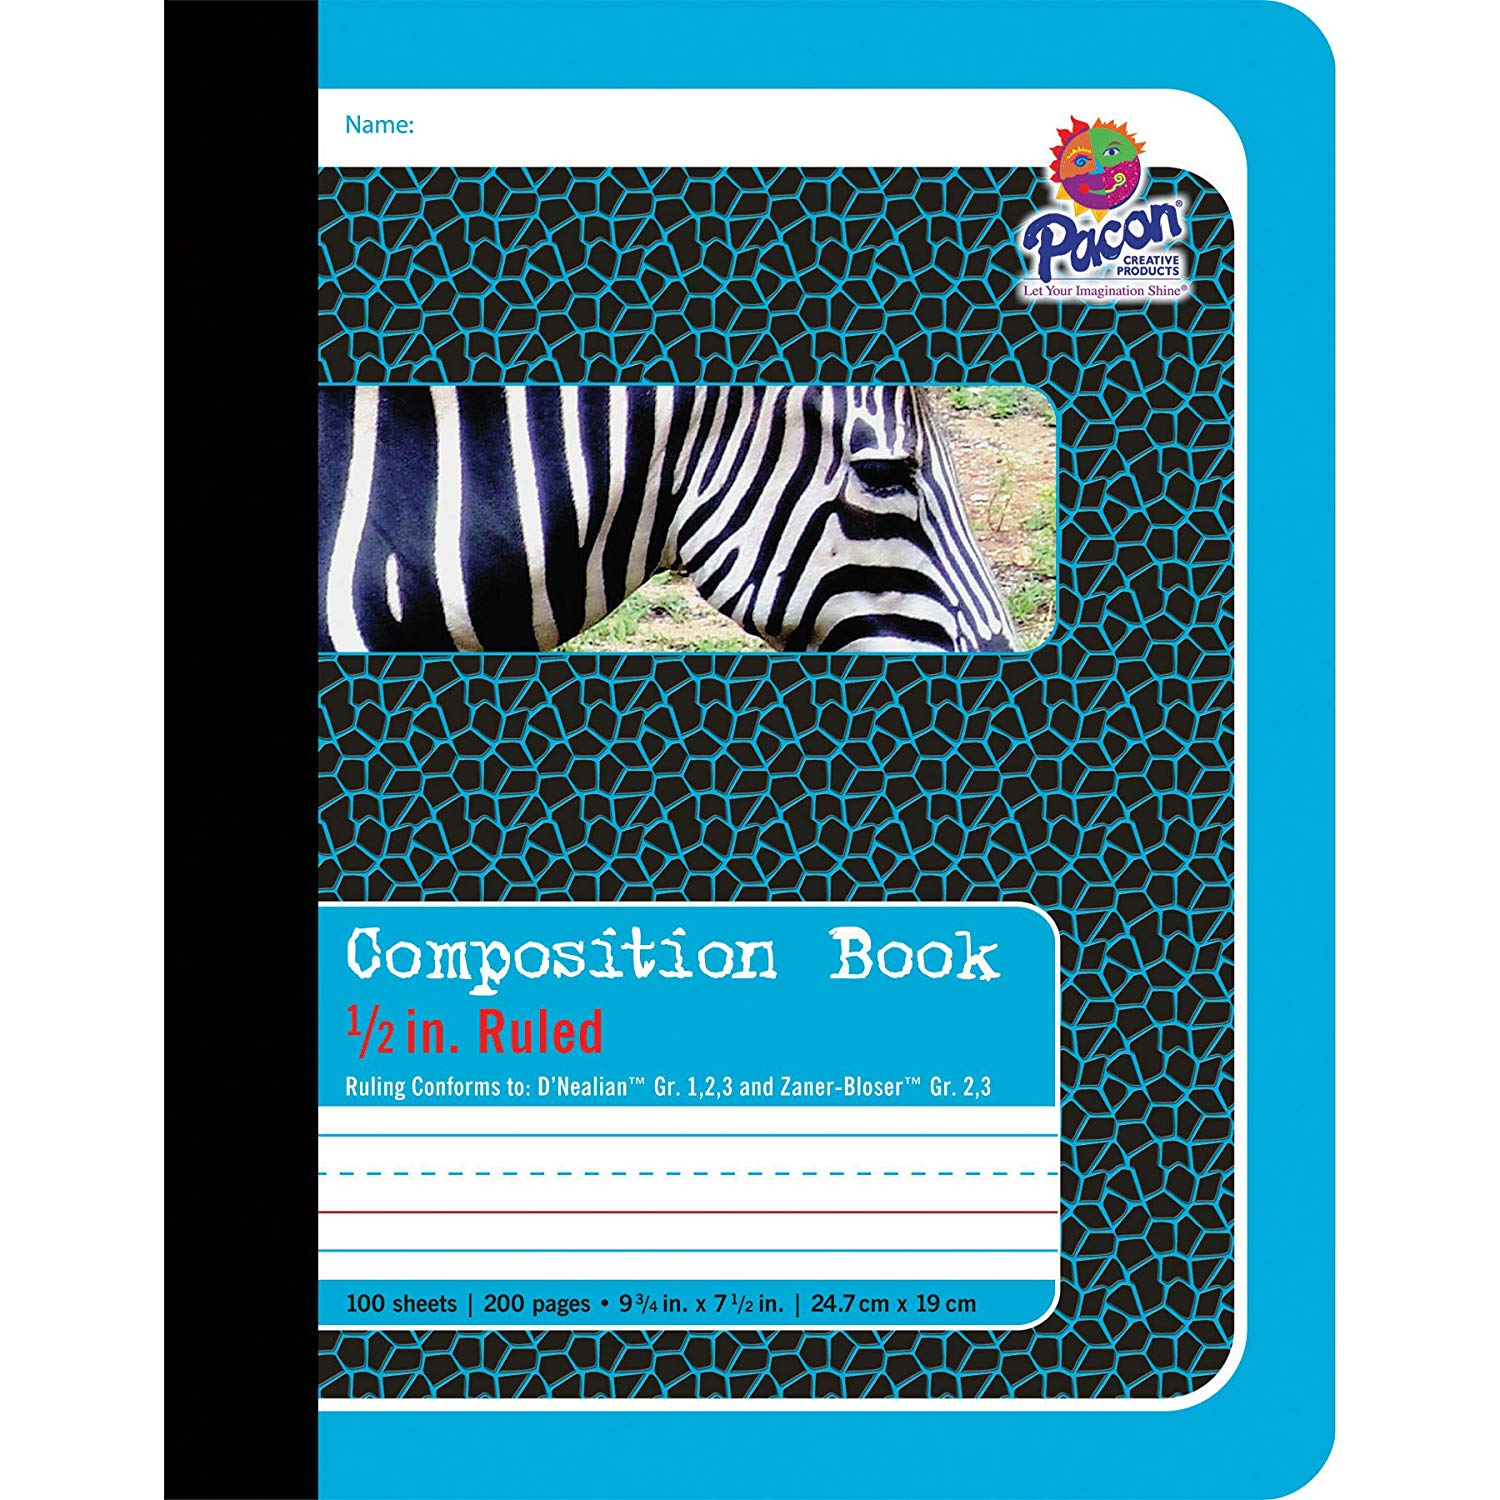 Pacon Primary Composition Book, 1/2-in. Ruled, 100 Sheets, Blue (2425)